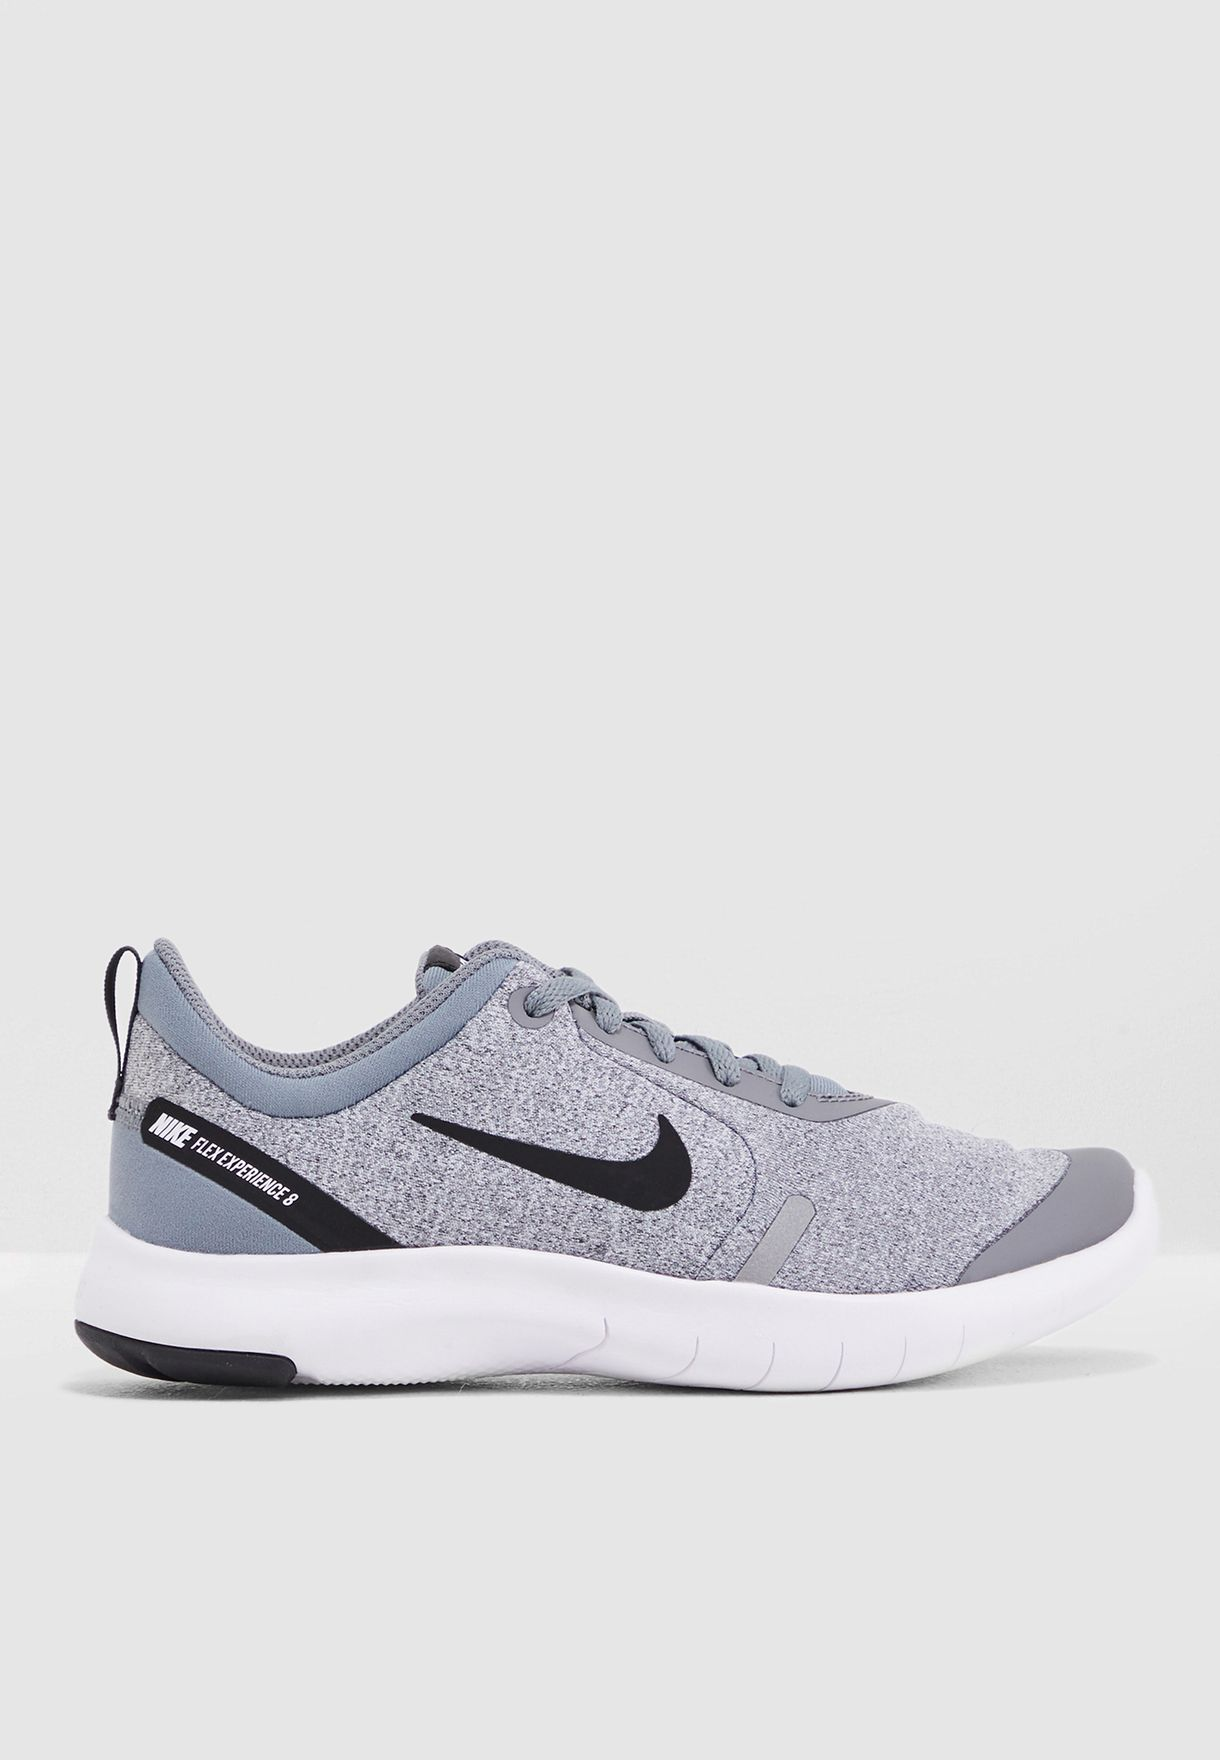 0488a93a97d8 Shop Nike grey Youth Flex Experience RN 8 AQ2246-003 for Kids in UAE ...